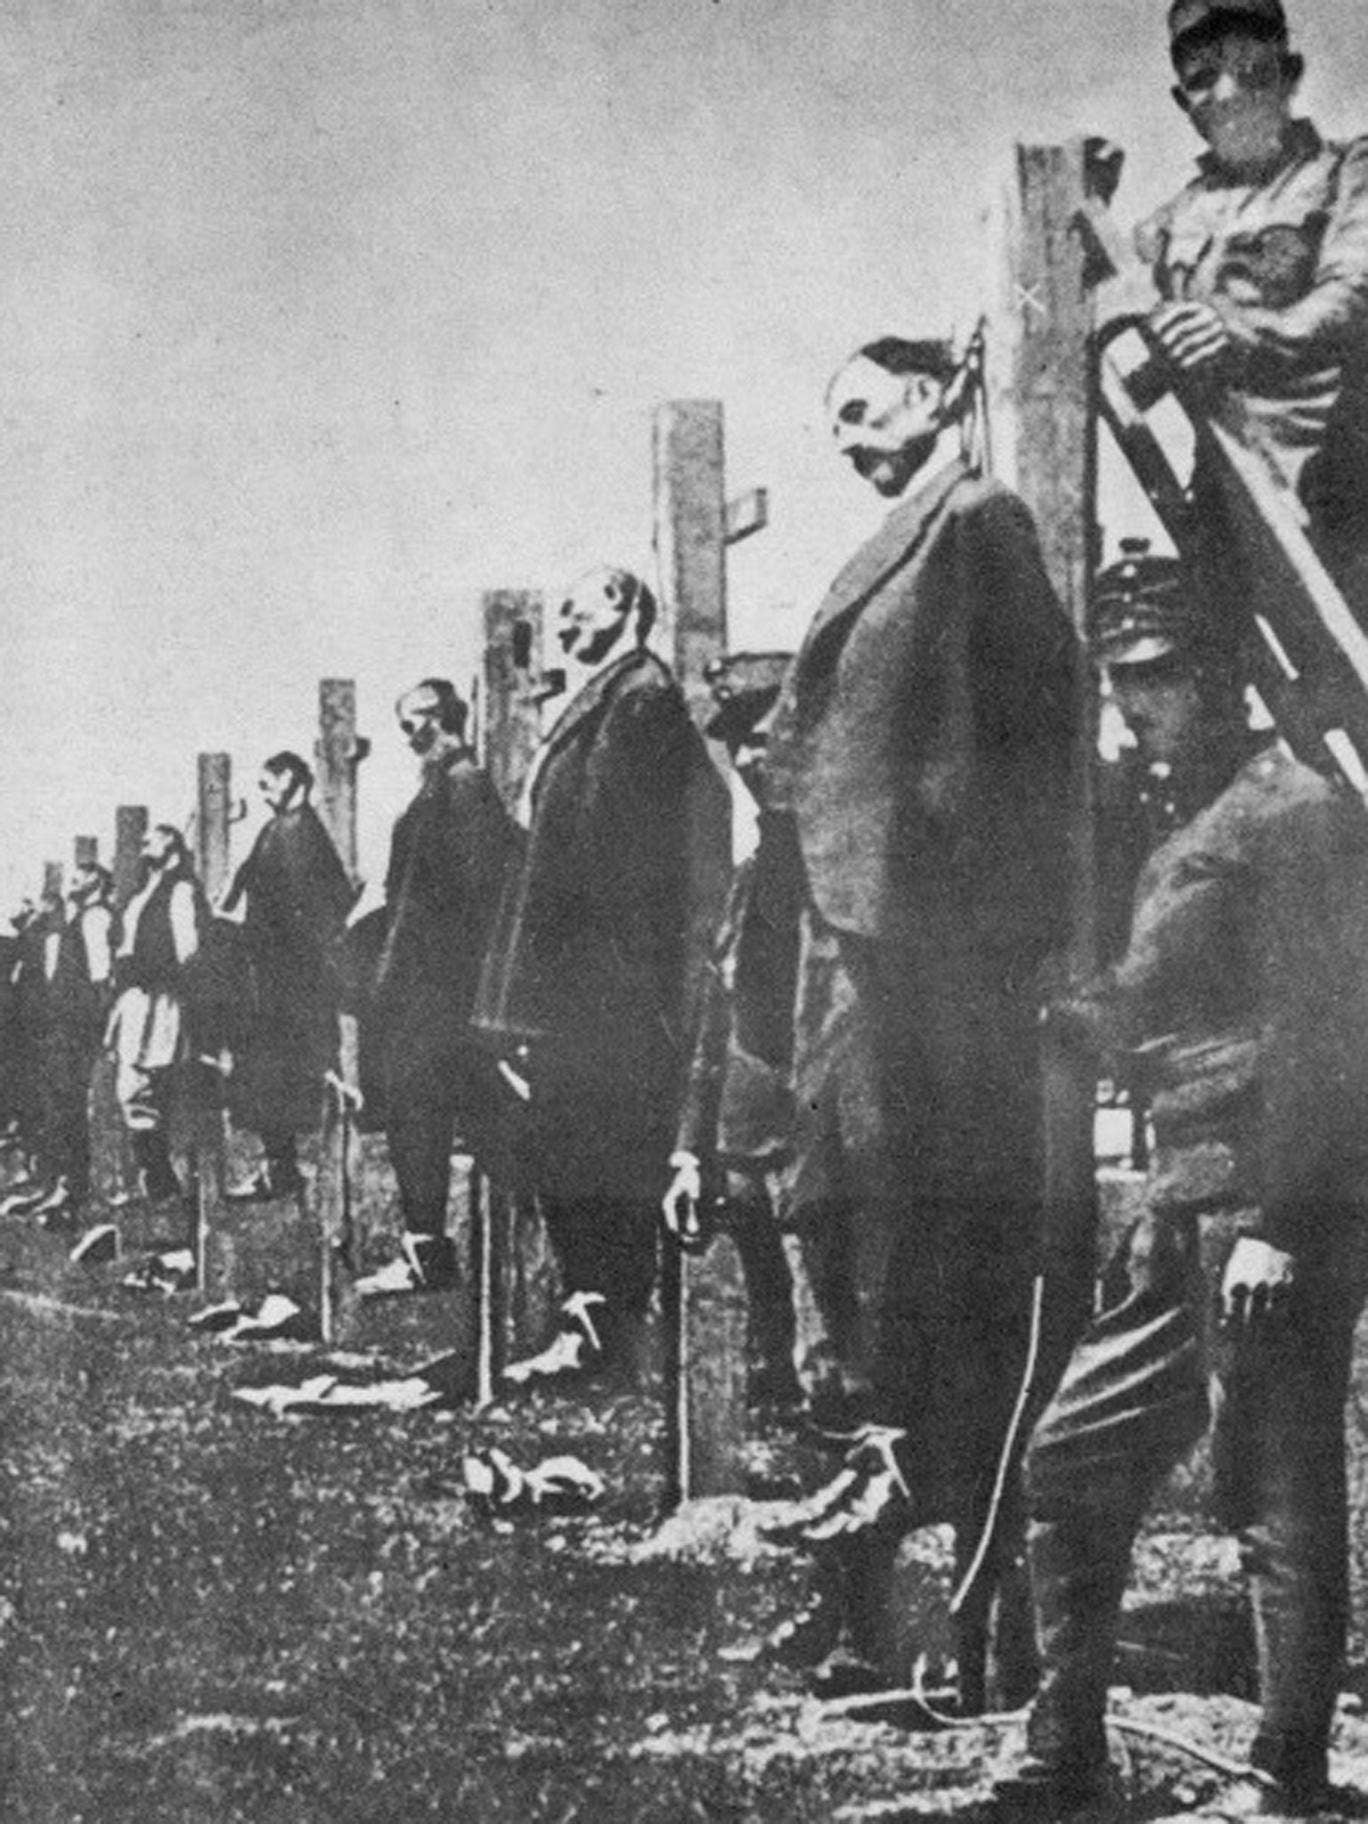 Civilians near the Austrian lines in Serbia are strung up – probably as a reprisal for guerrilla resistance to the invaders